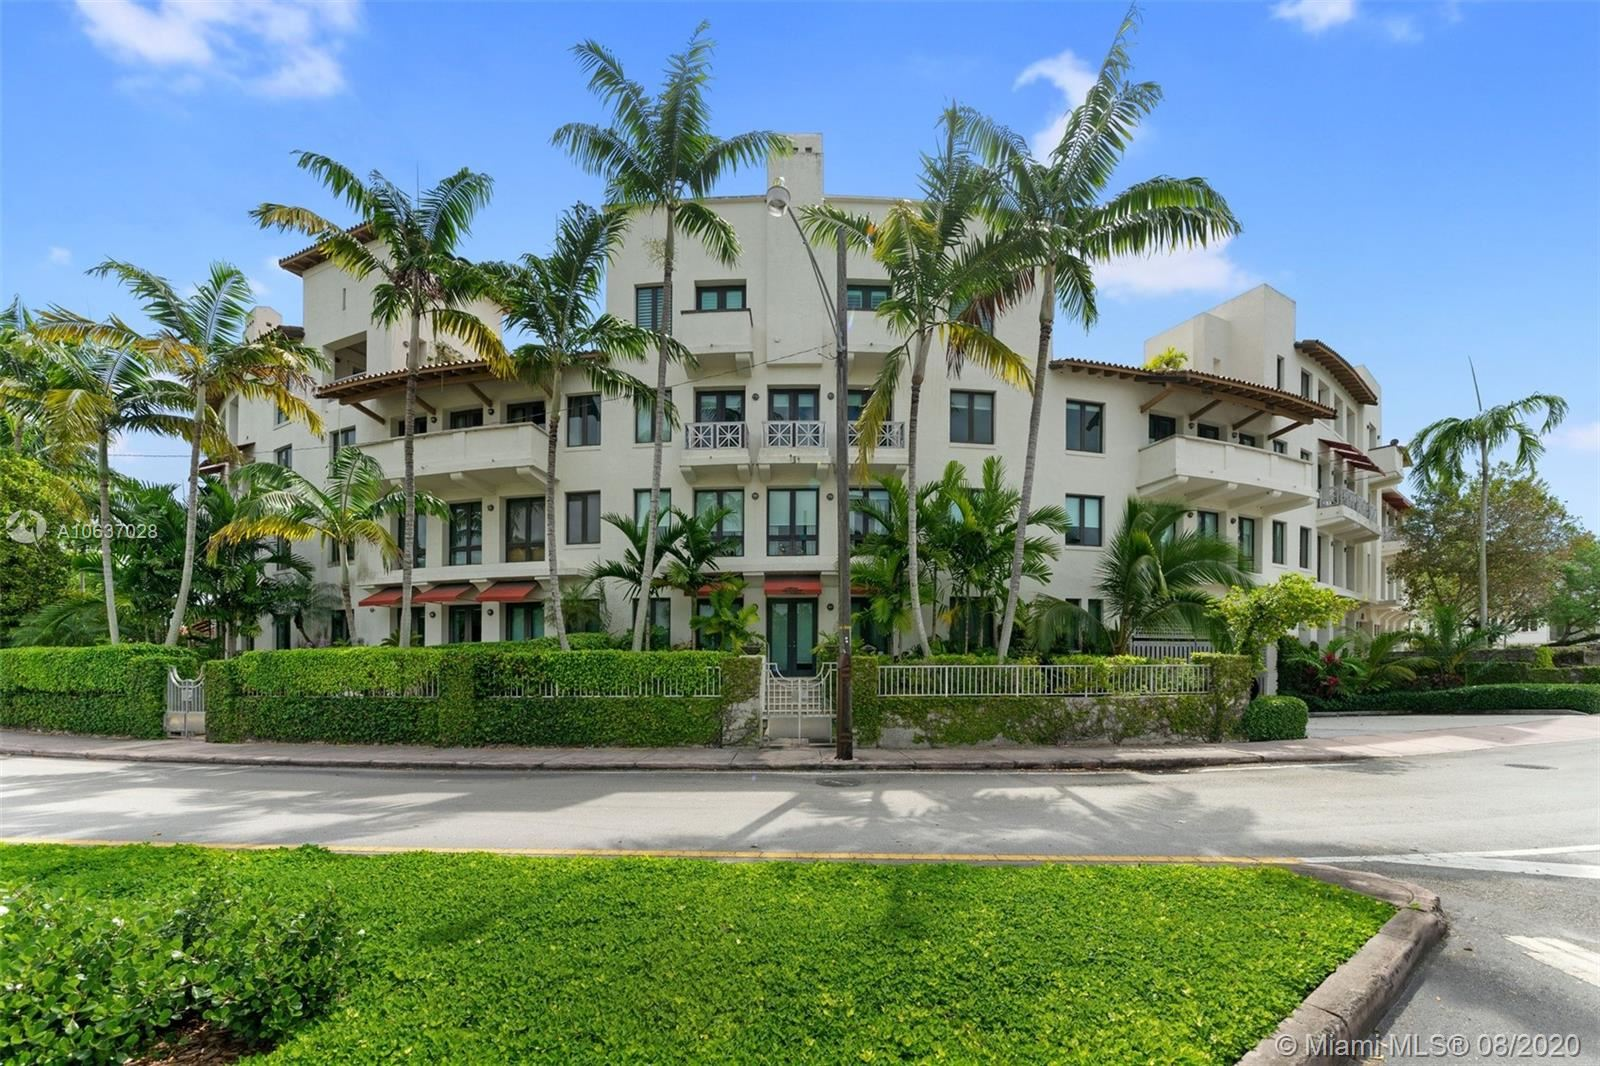 2401 Anderson Rd #6, Coral Gables, FL 33134 - #: A10637028